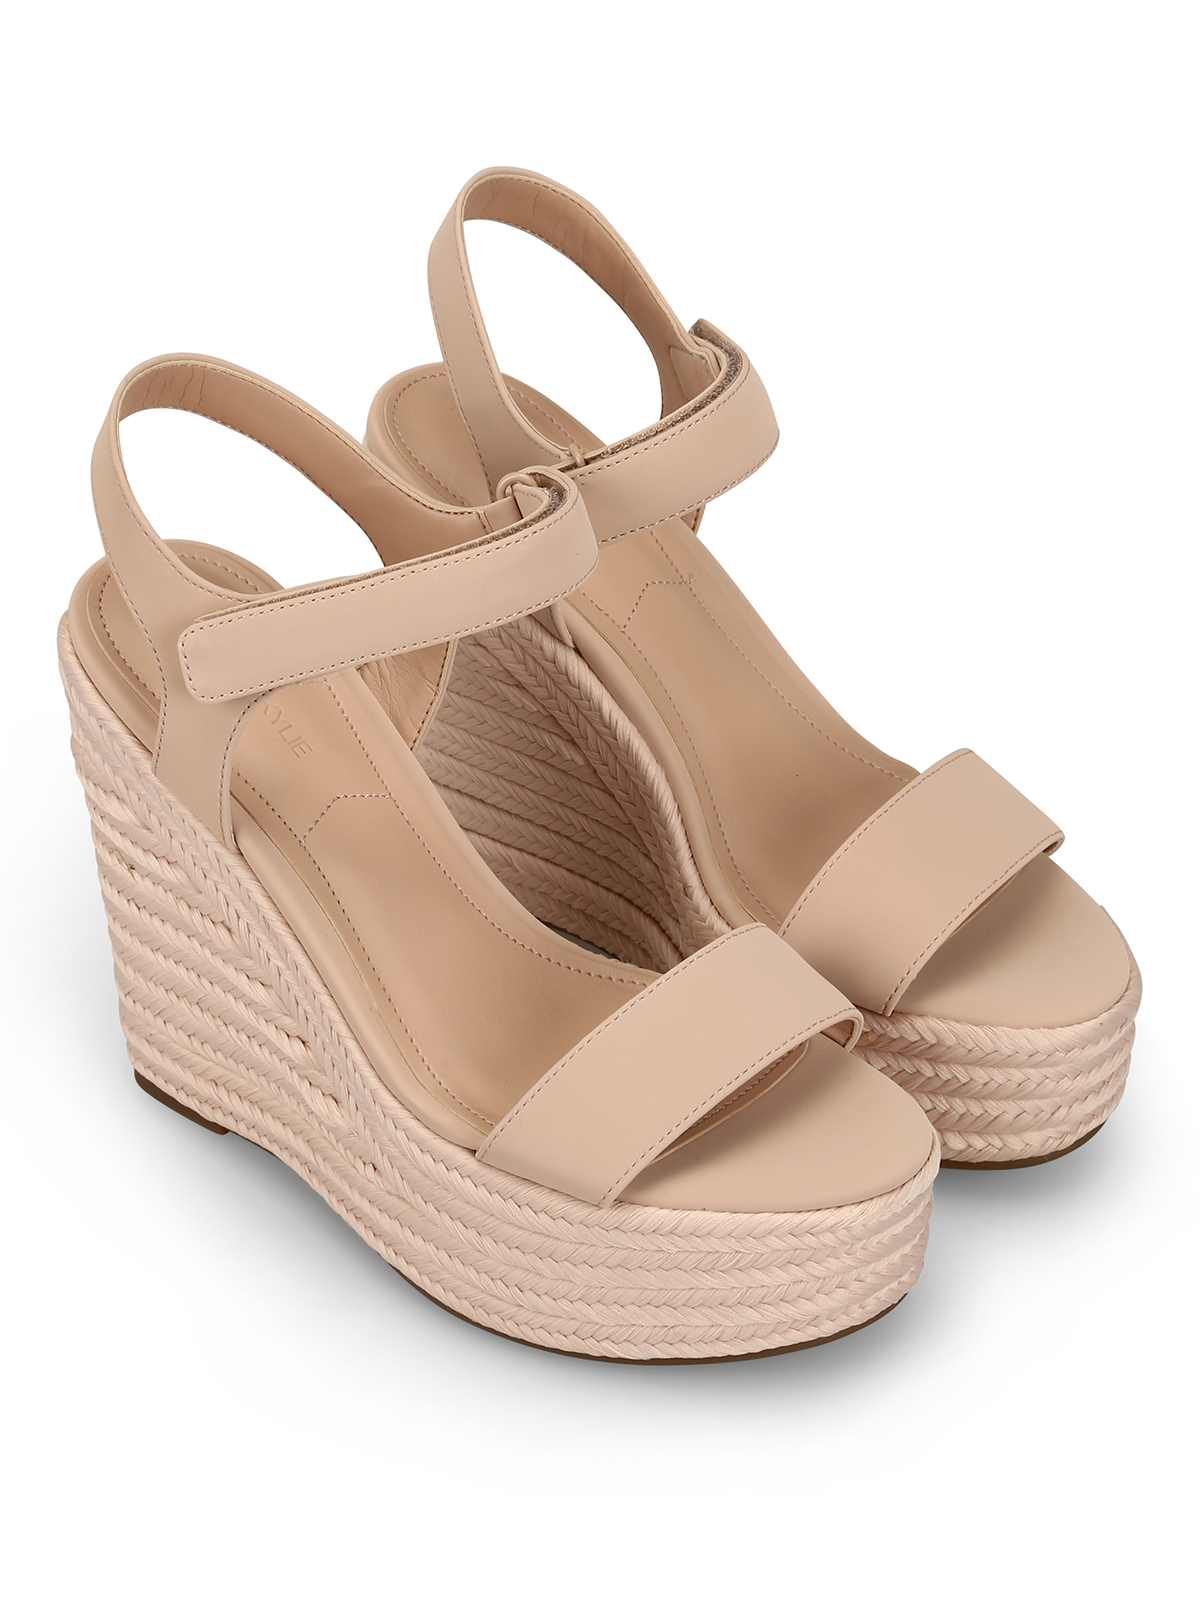 1ce8129e77 Kendall + Kylie: sandals online - Grand pink leather wedge sandals